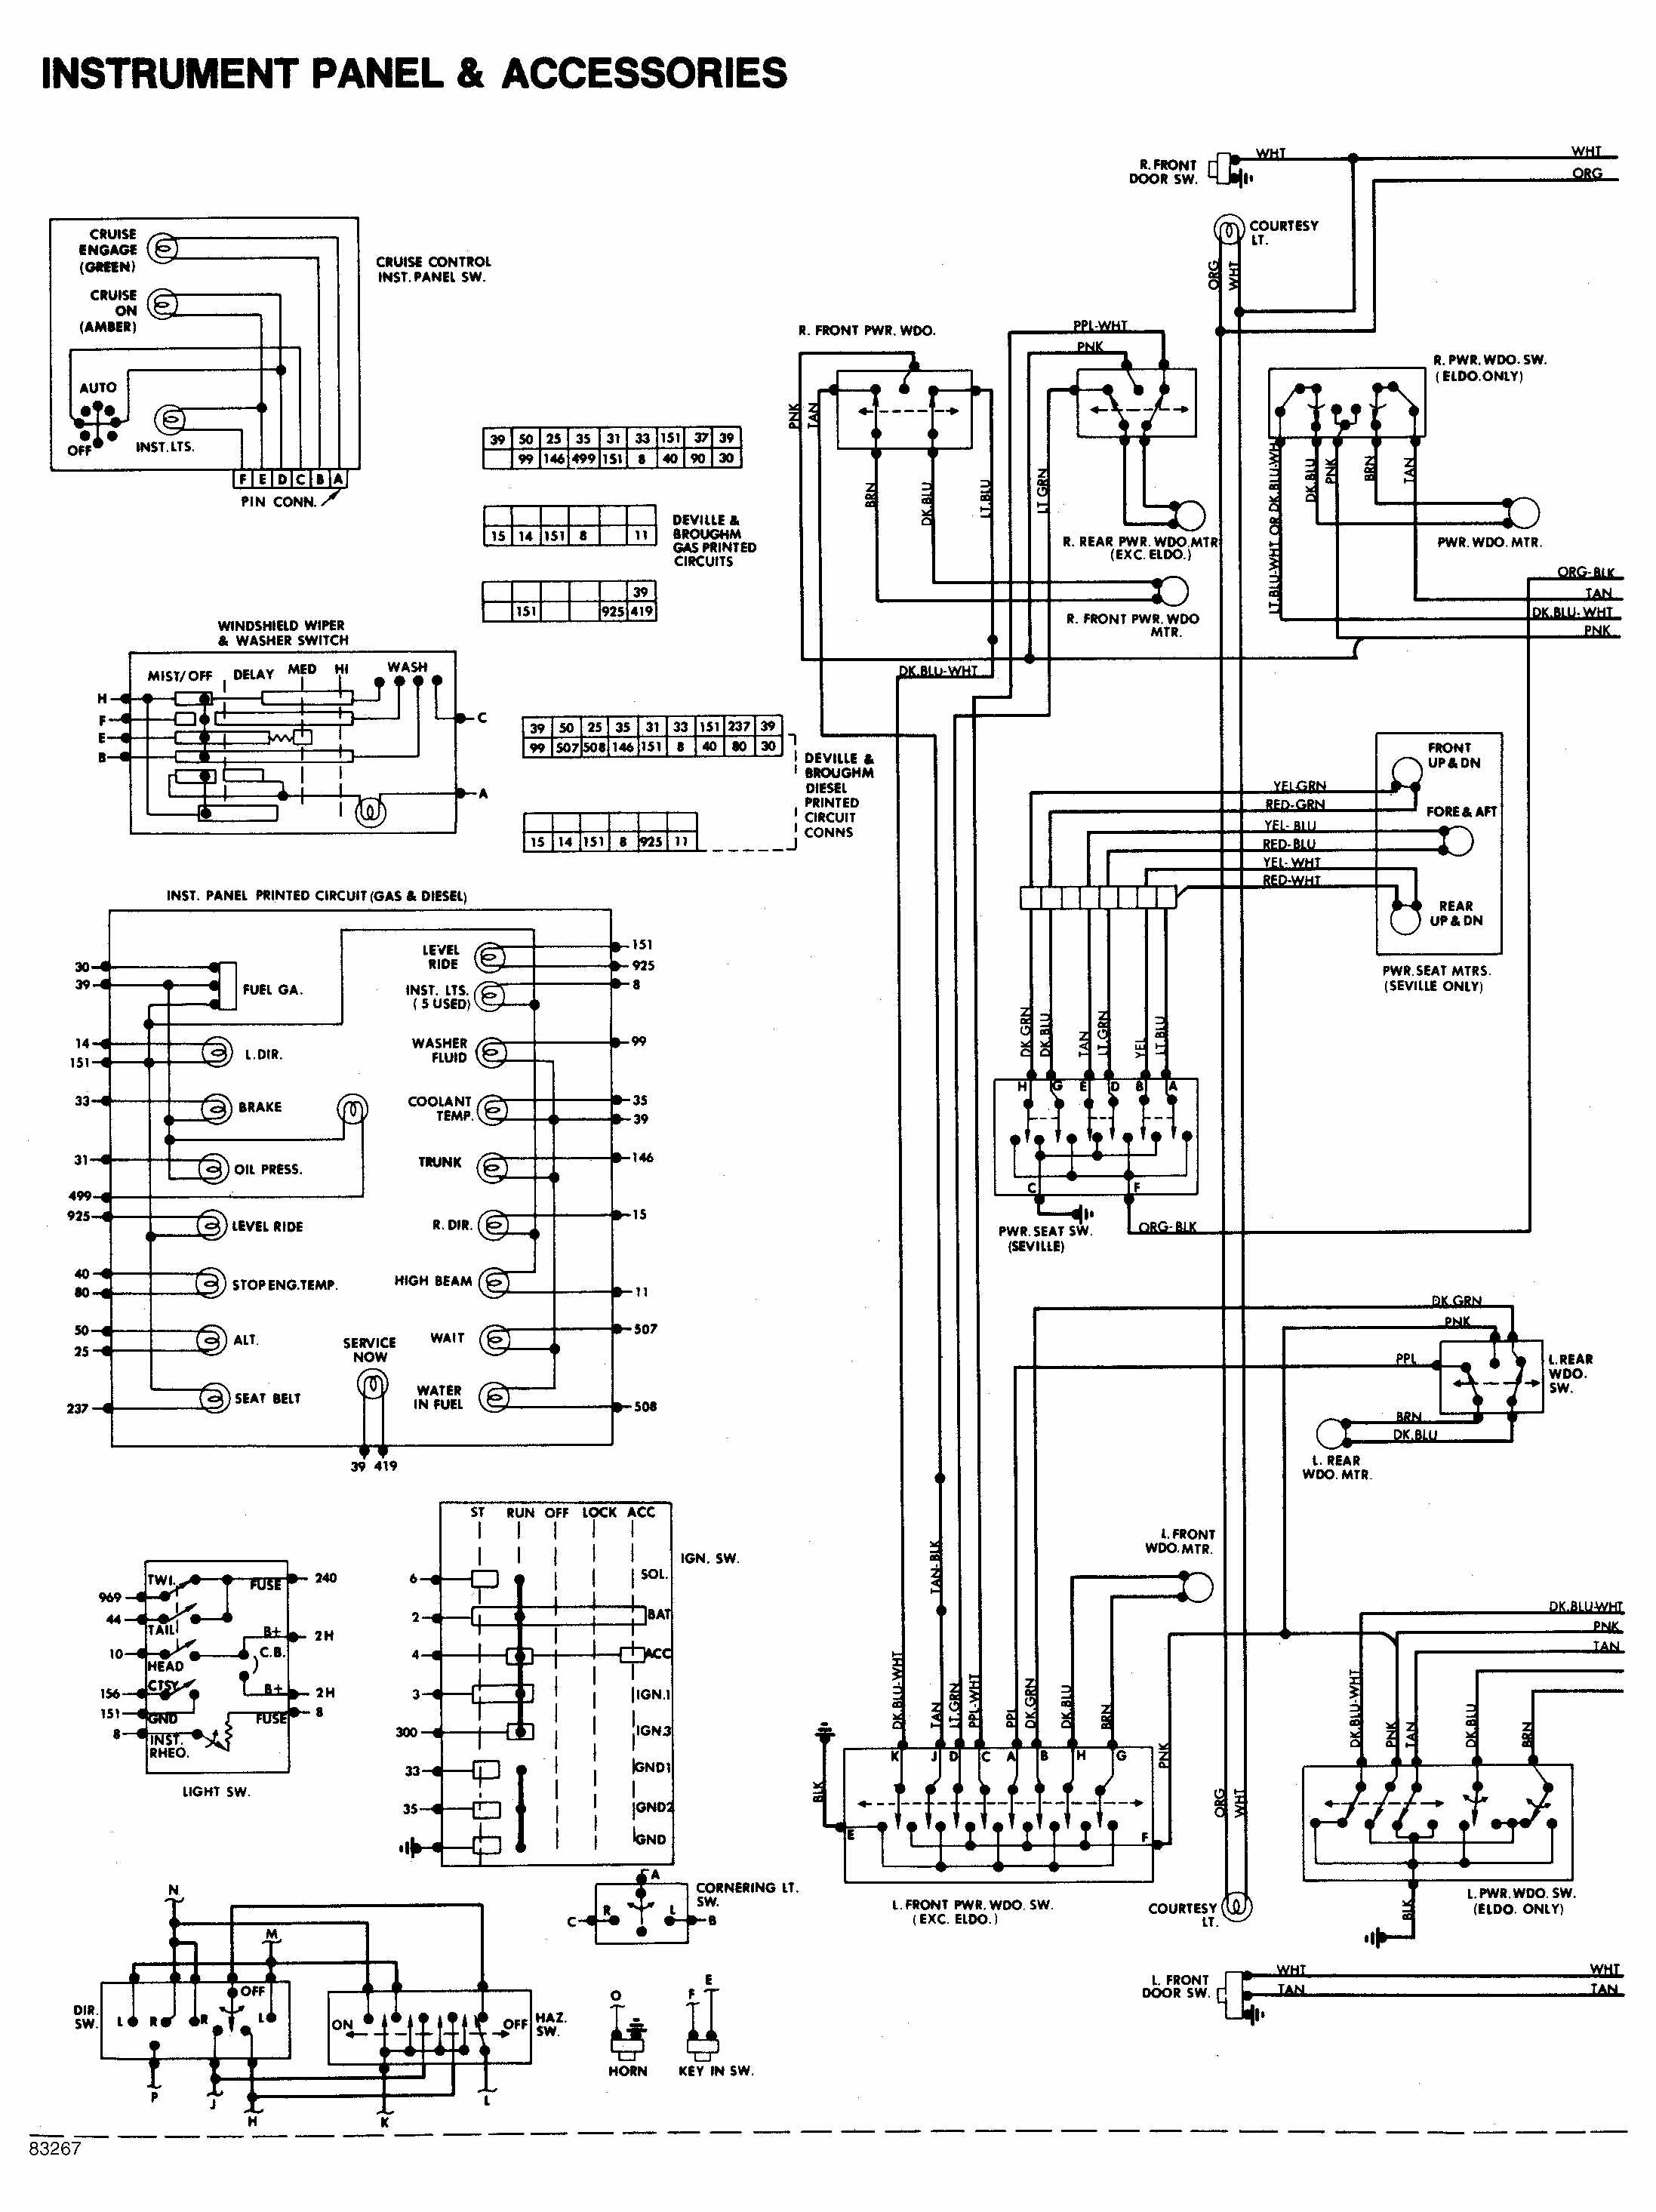 Chevy Wiring Harness Dash Bezel Library 77 Jeep Cj7 Wire 1984 Cadillac Deville Instrument Panel And Accessories Diagram Drawing A